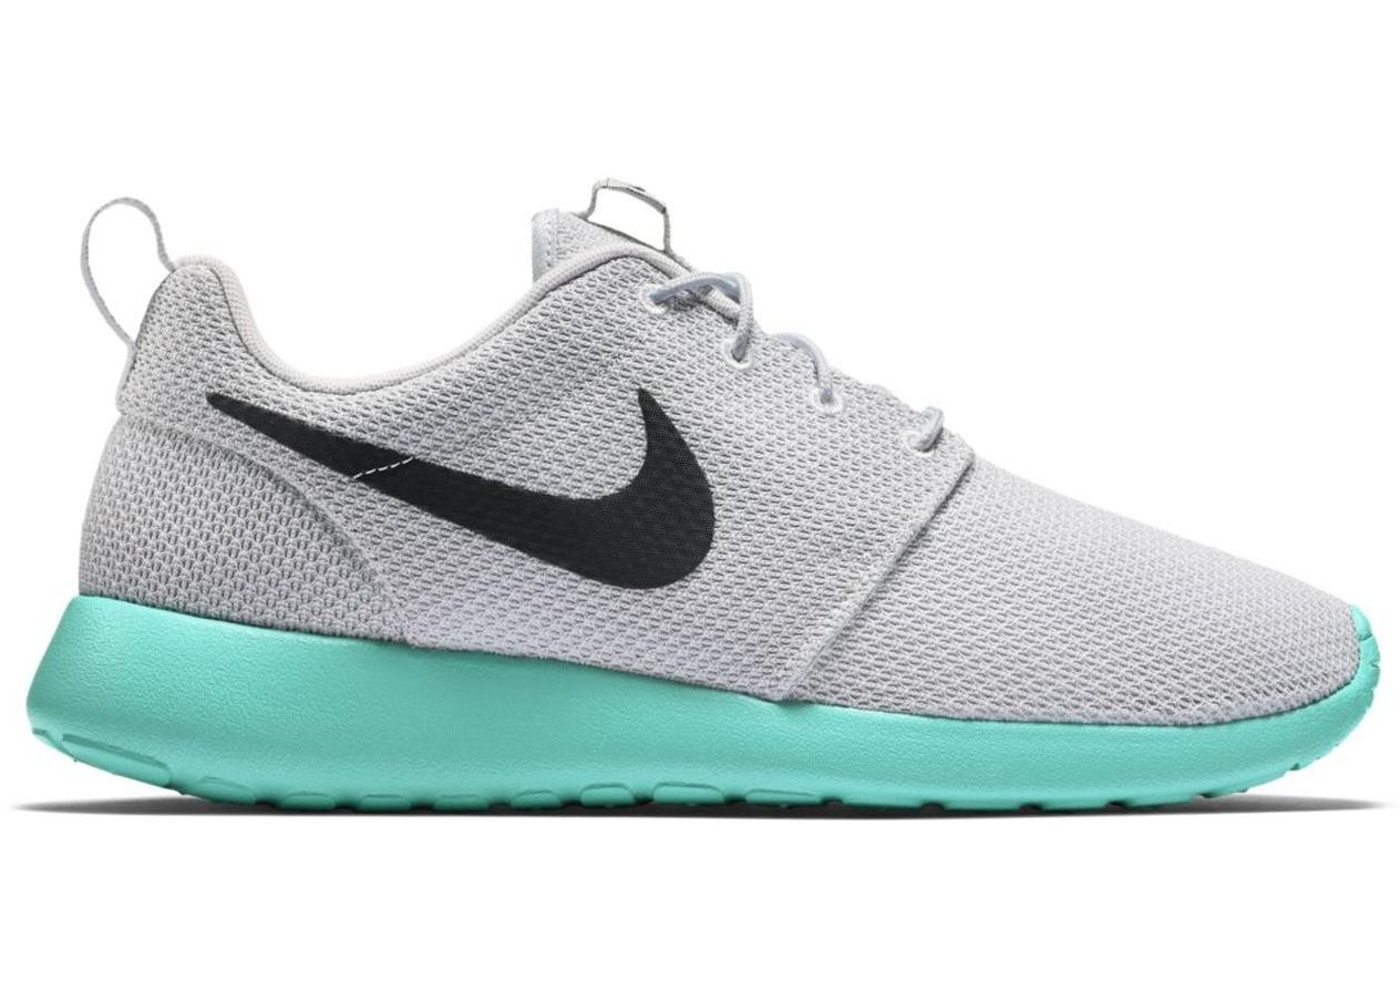 702c6f3d44c8 Nike Other Running Shoes - Lowest Ask